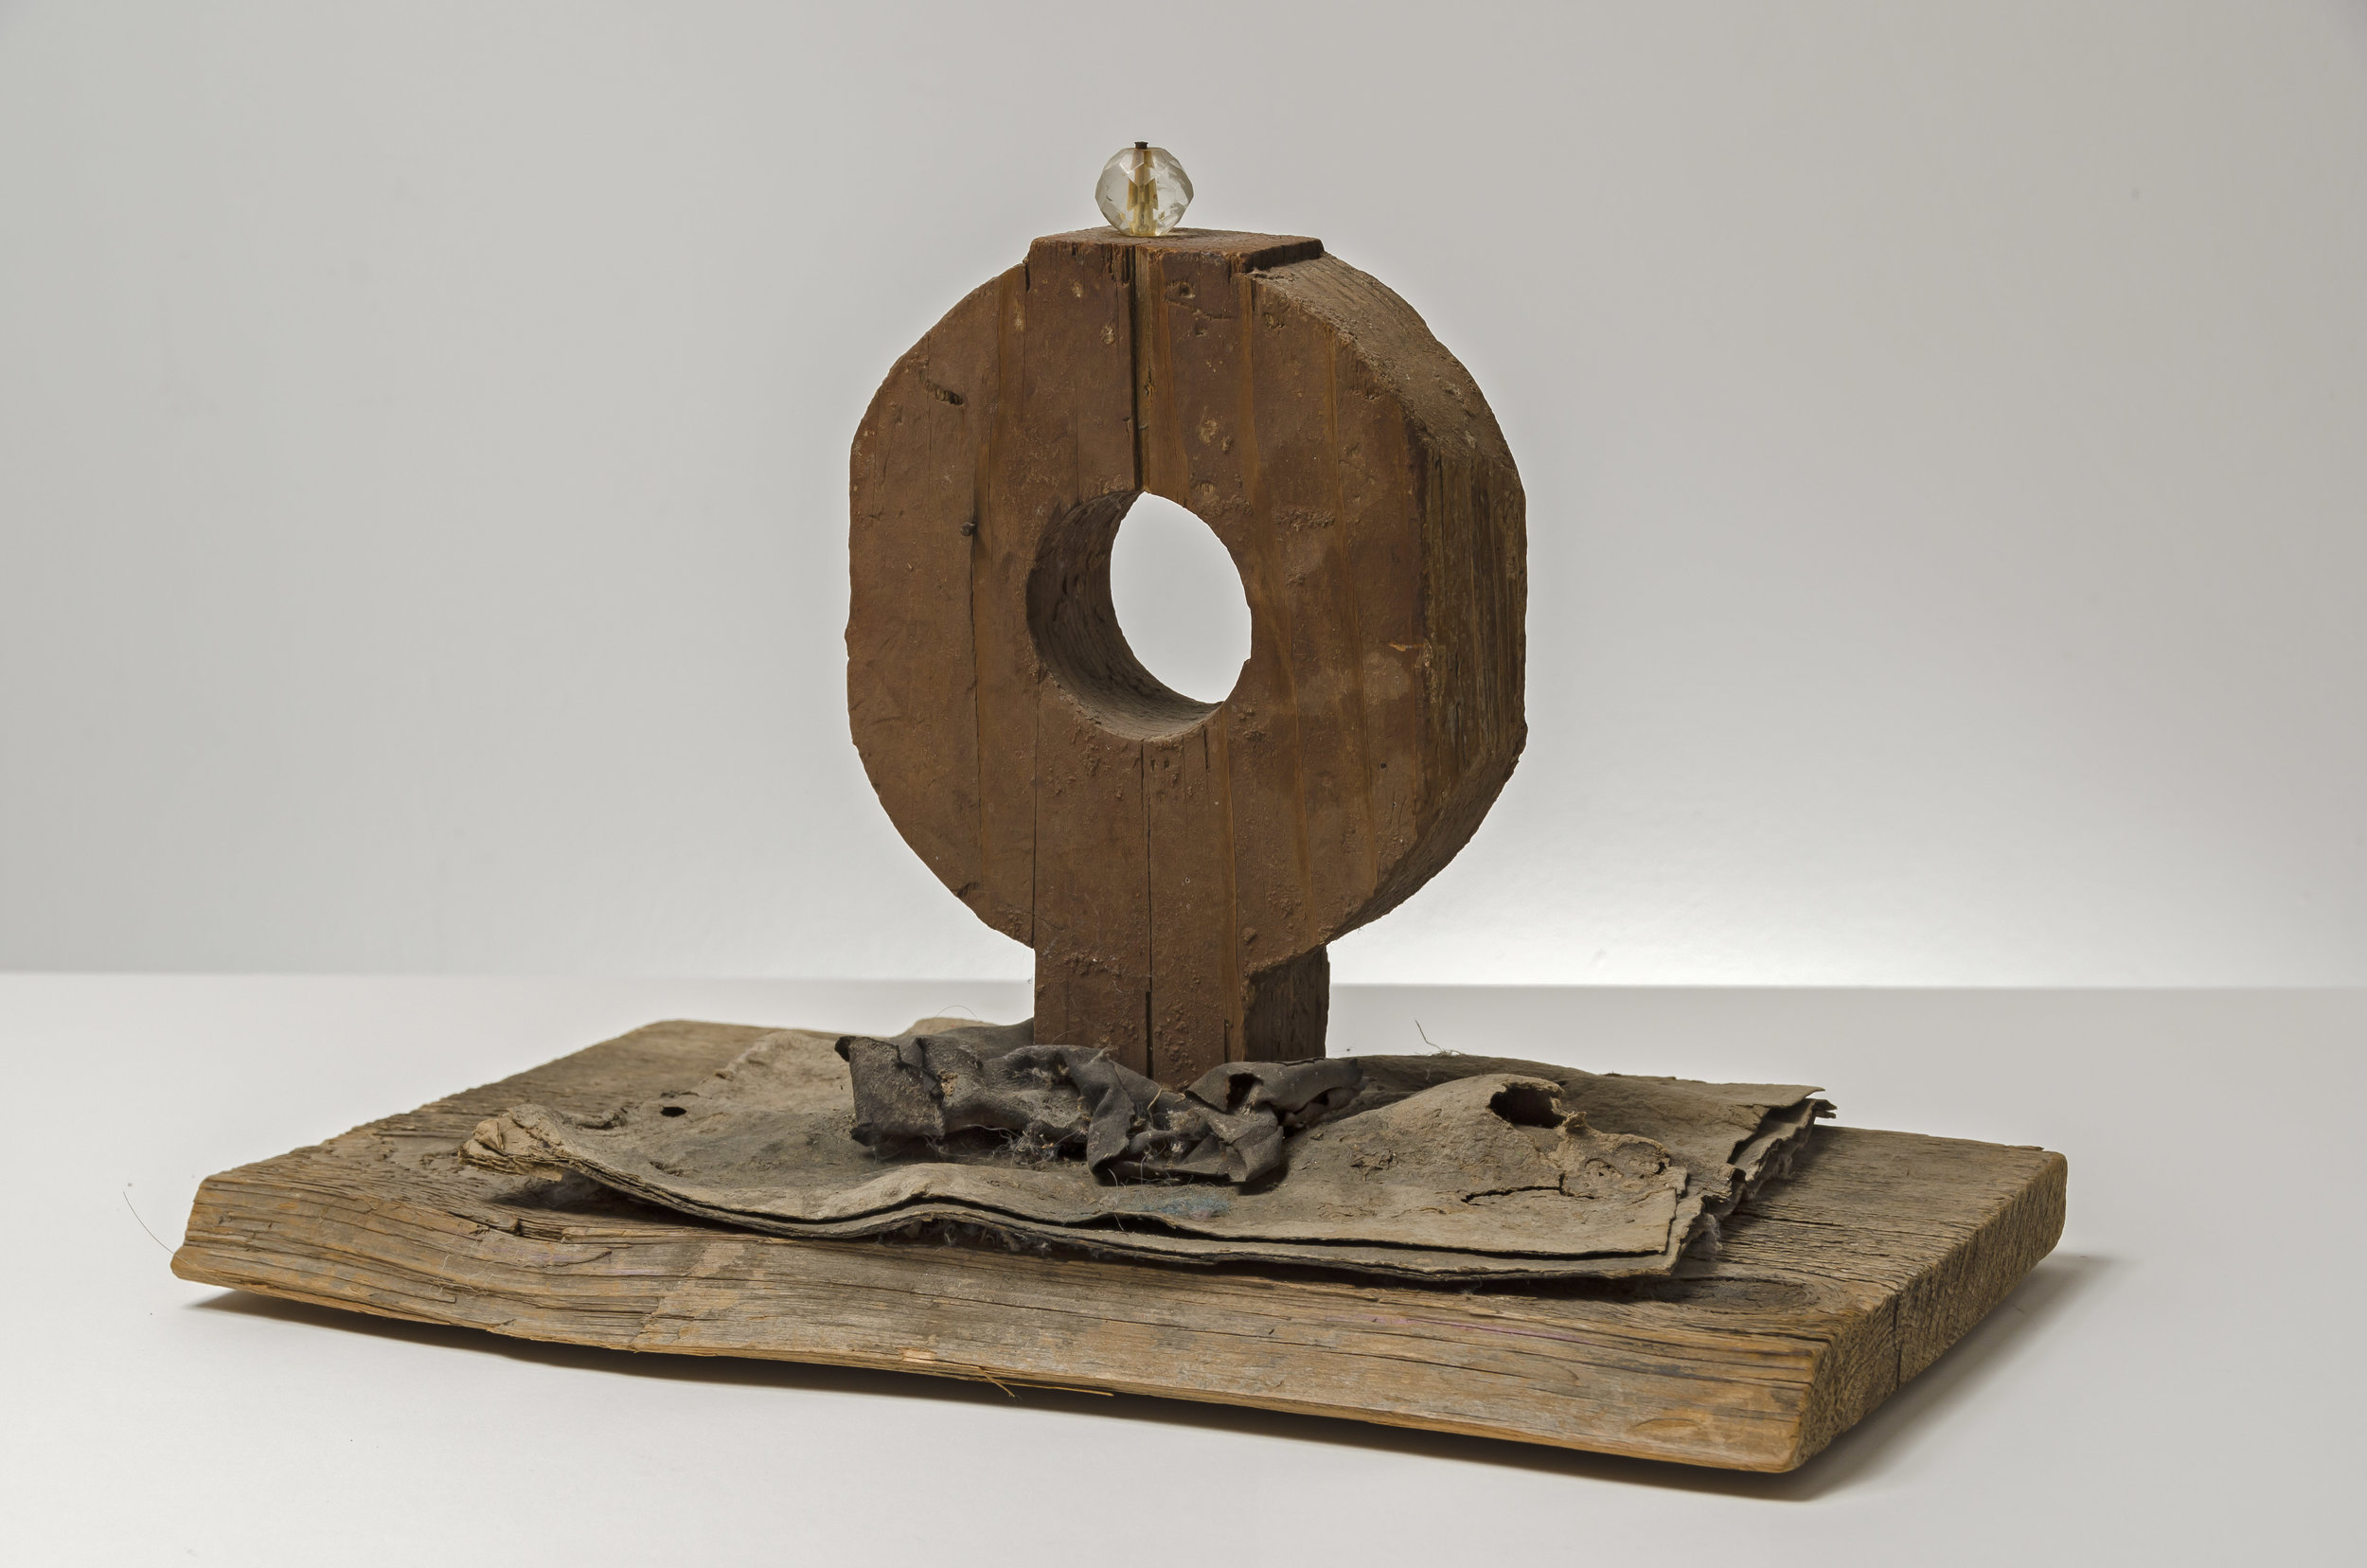 Untitled Ring Sculpture , c. 1960  mixed media sculpture 14 x 8 1/2 x 9 1/2 inches; 35.6 x 21.6 x 24.1 centimeters